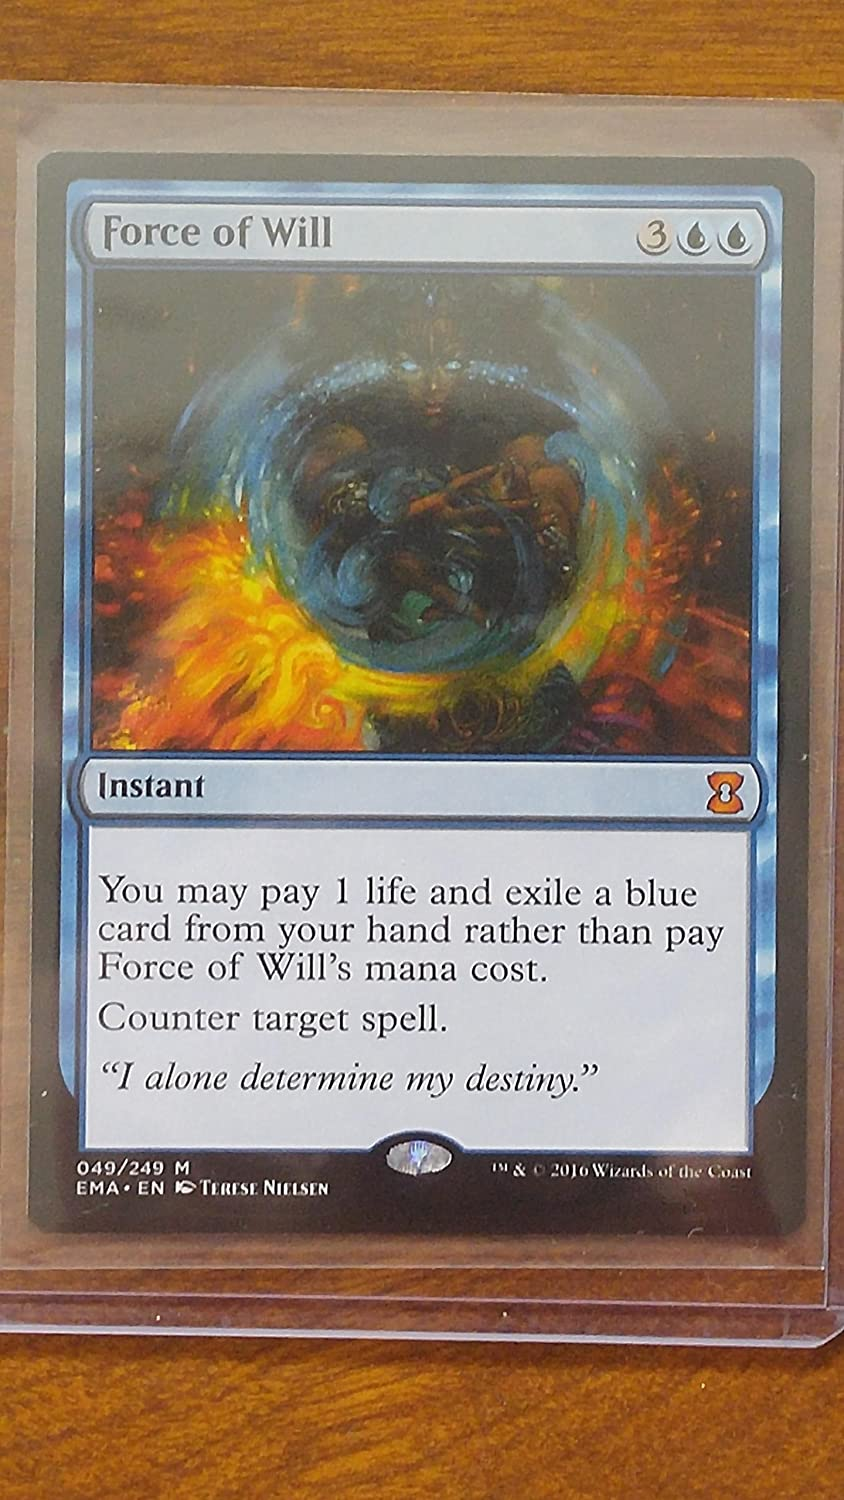 Ahorre hasta un 70% de descuento. Magic  the Gathering Gathering Gathering - Force of Will (040 249) - Eternal Masters - Foil by Magic  the Gathering  el mas reciente